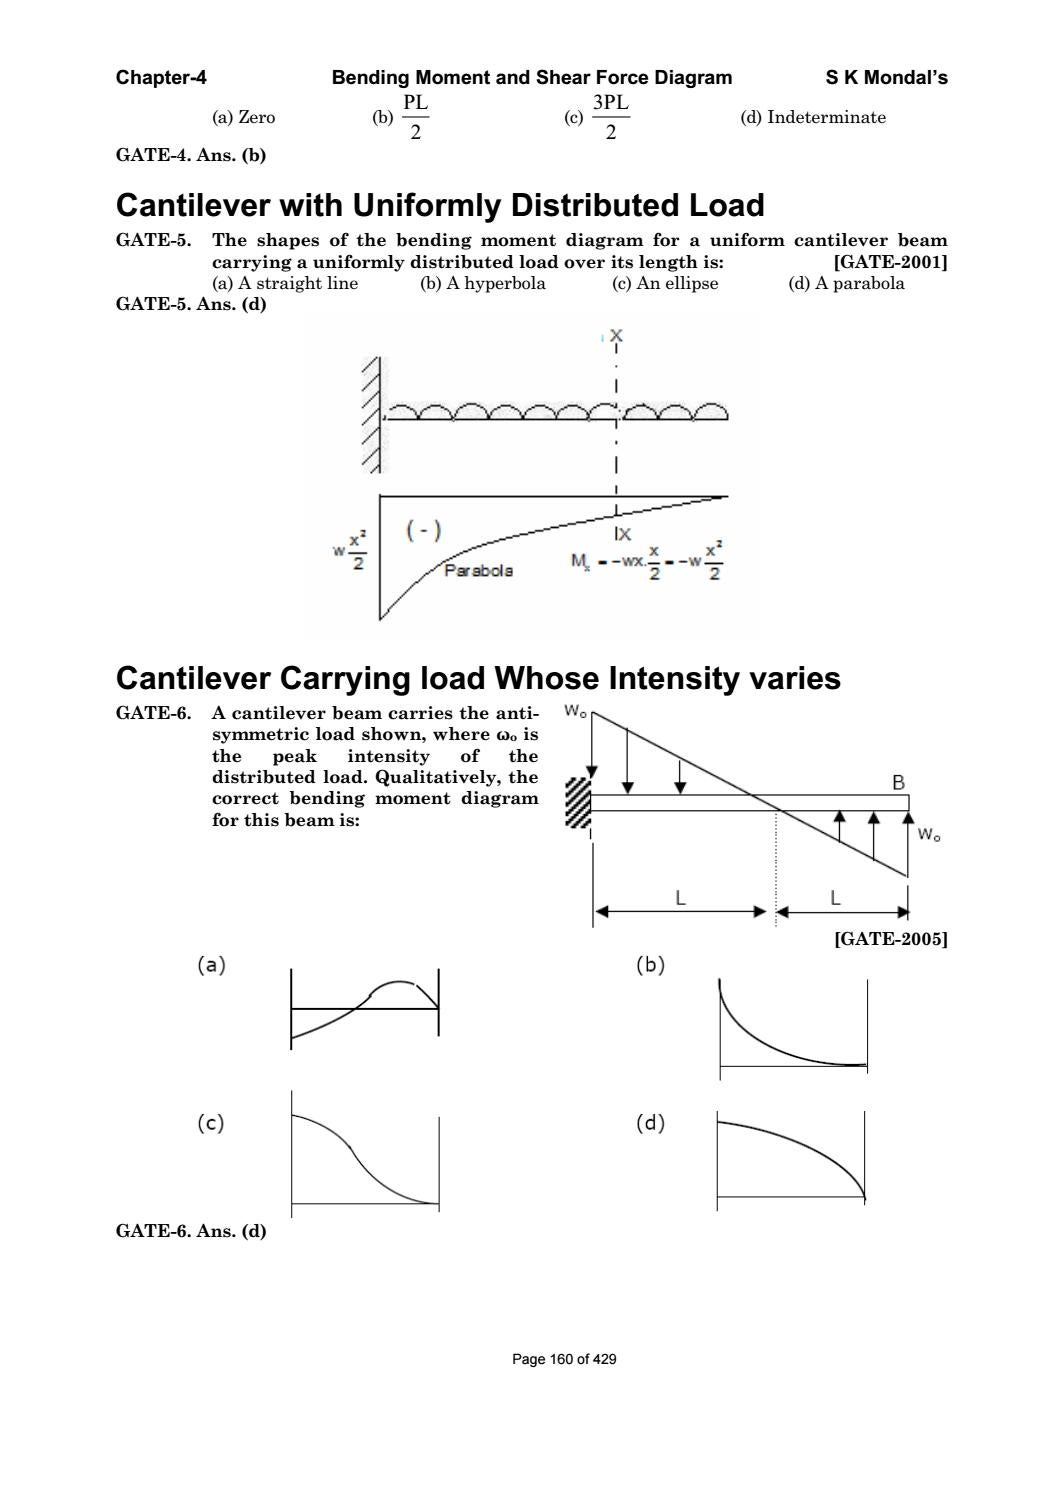 Moment Diagram Cantilever Gate Shear Force For Beam Strength Of Materials Mondal Dharmaraj Issuu 1059x1497